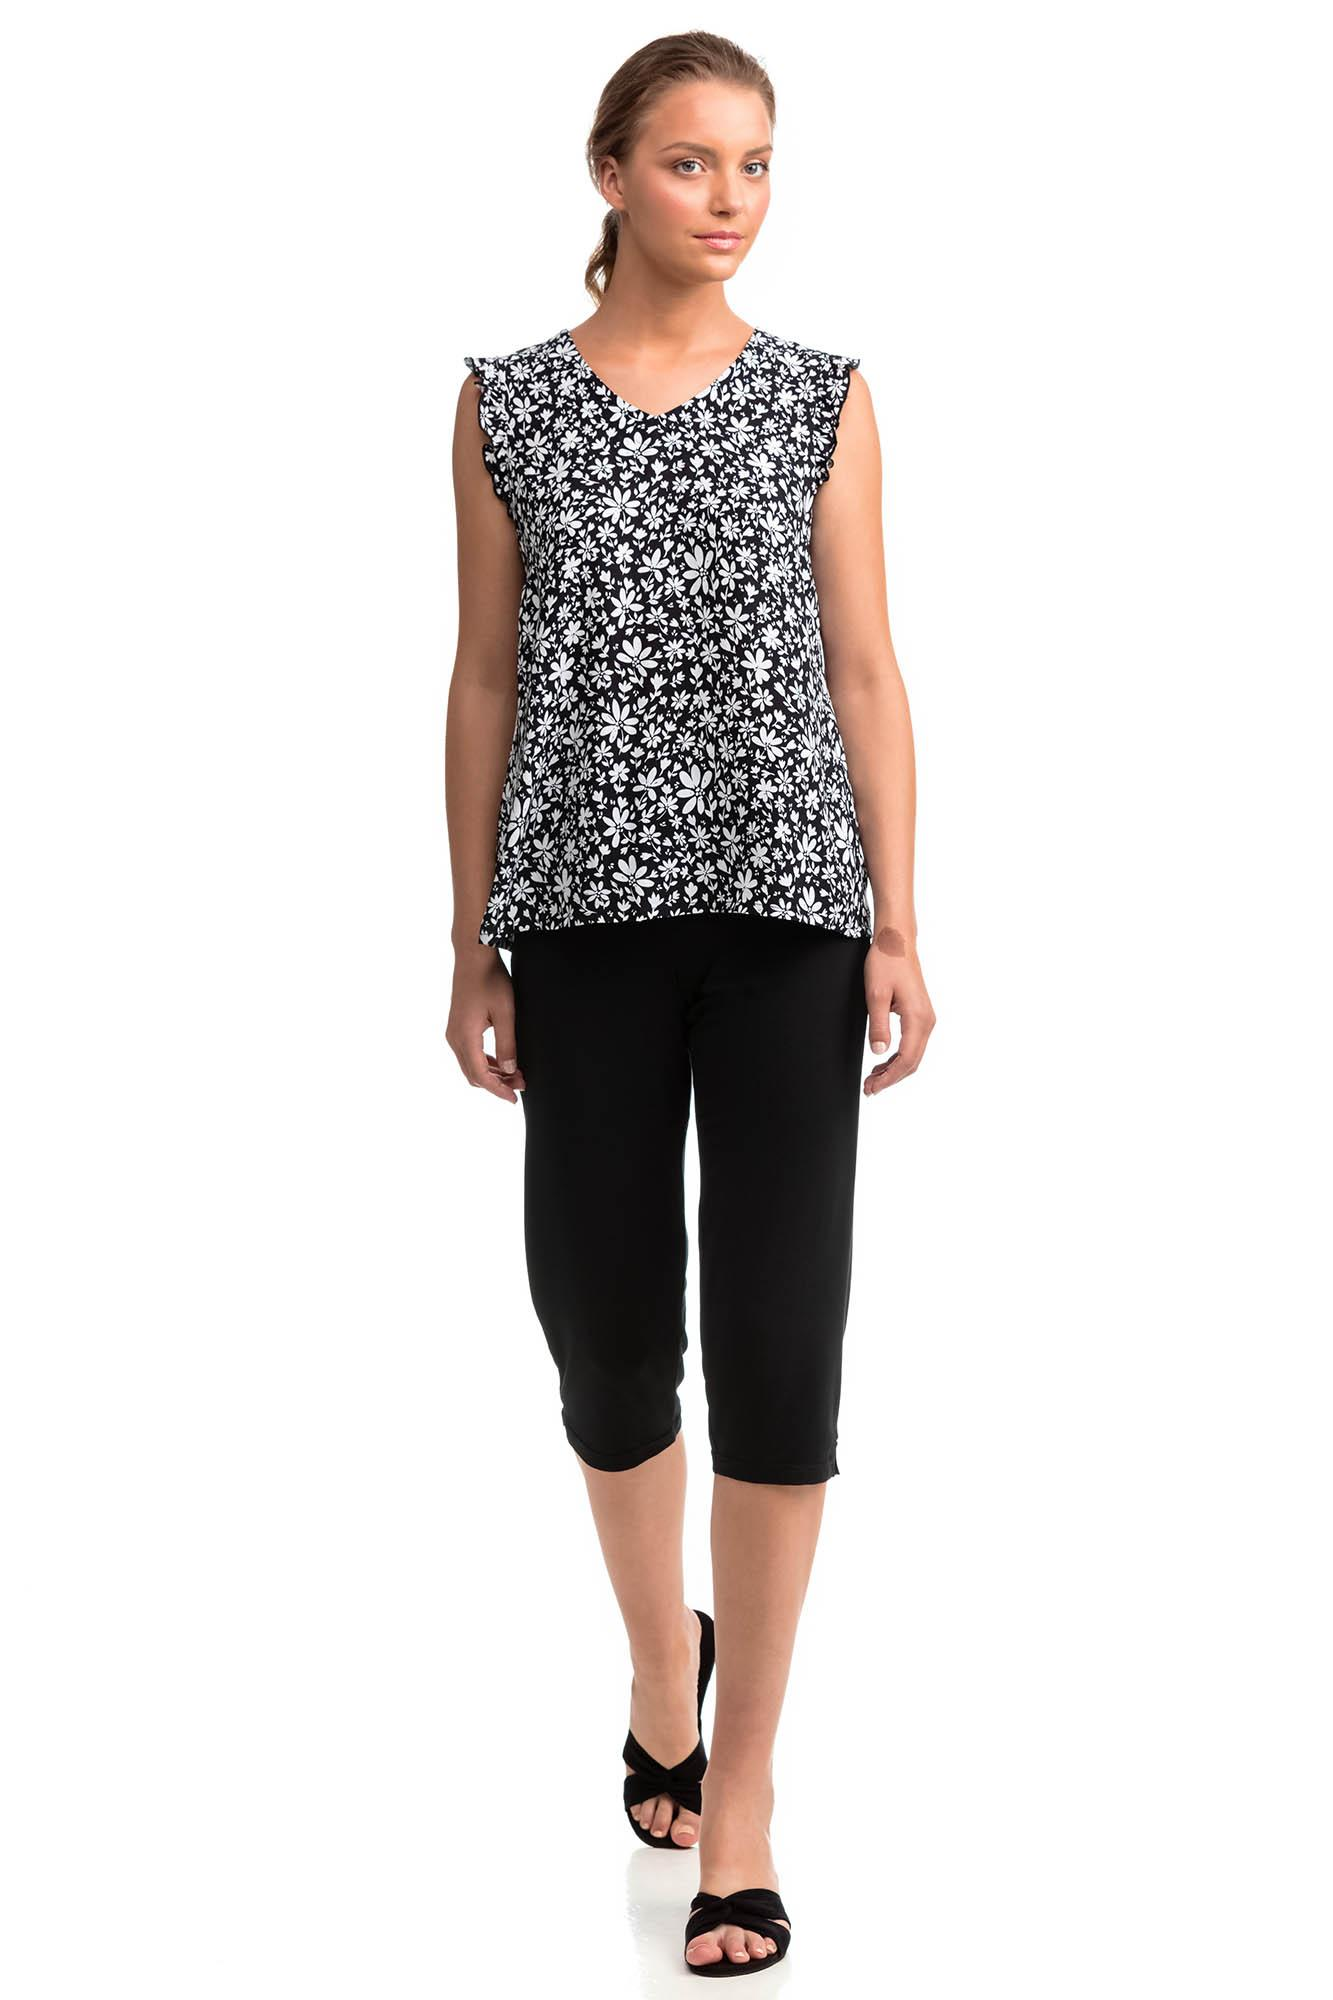 Women's Floral Top and Capri Pants Set